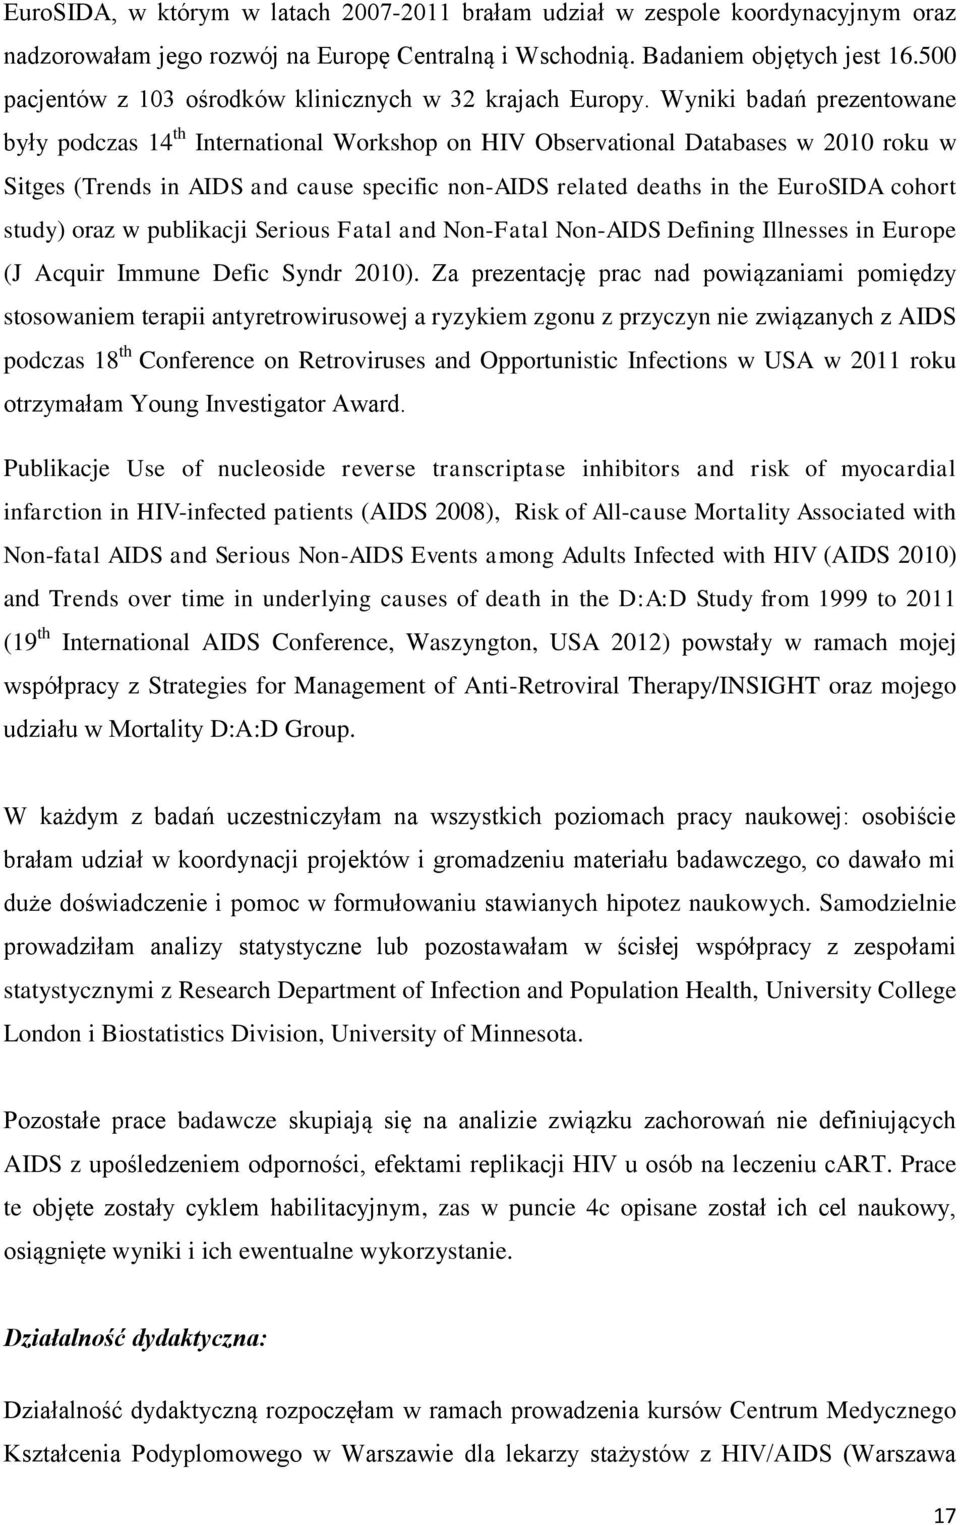 Wyniki badań prezentowane były podczas 14 th International Workshop on HIV Observational Databases w 2010 roku w Sitges (Trends in AIDS and cause specific non-aids related deaths in the EuroSIDA